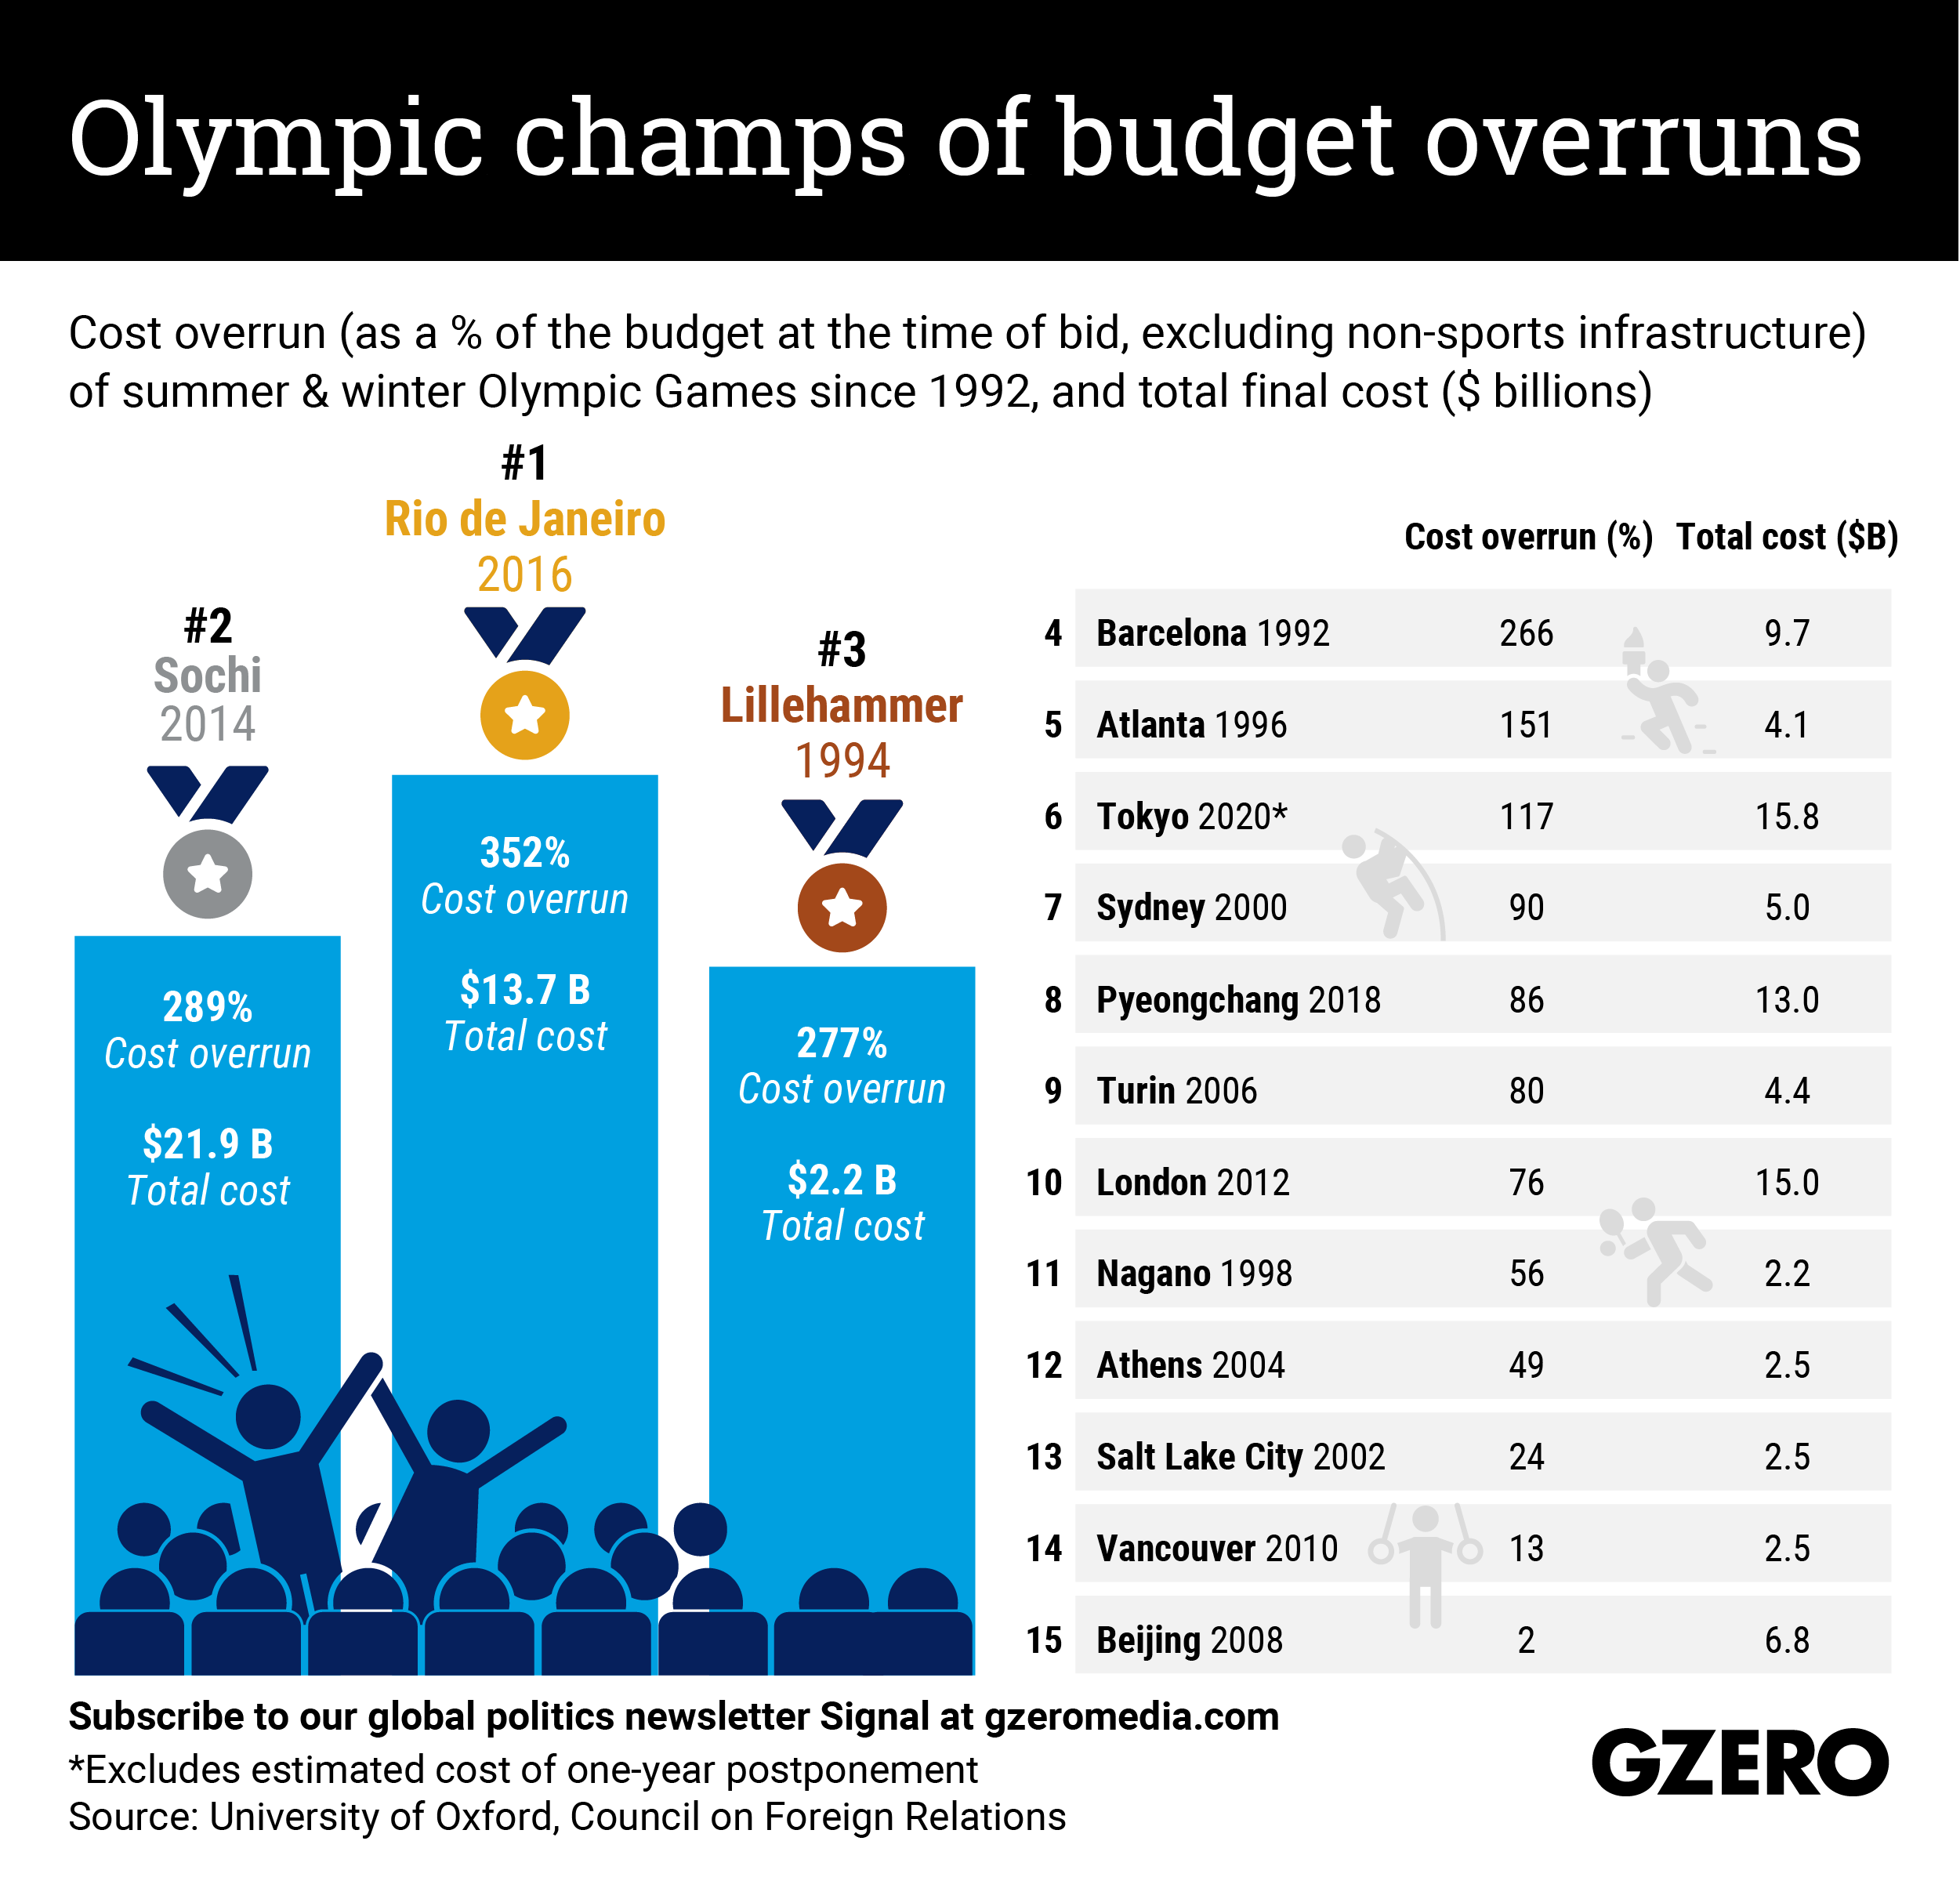 The Graphic Truth: Olympic champs of budget overruns